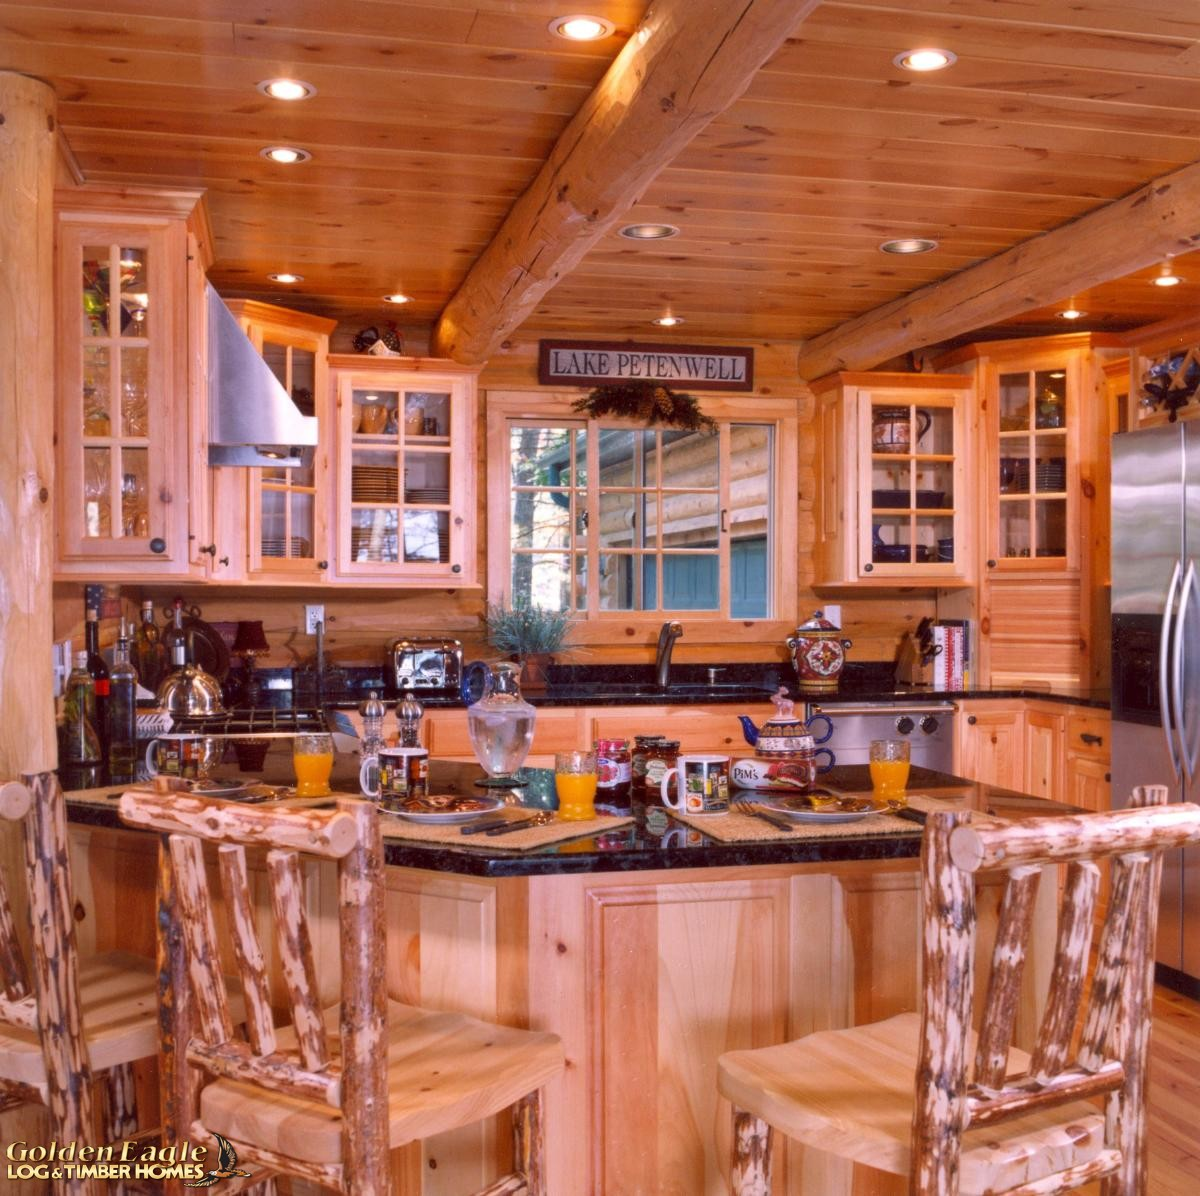 Golden Eagle Log And Timber Homes : Plans & Pricing : Plan